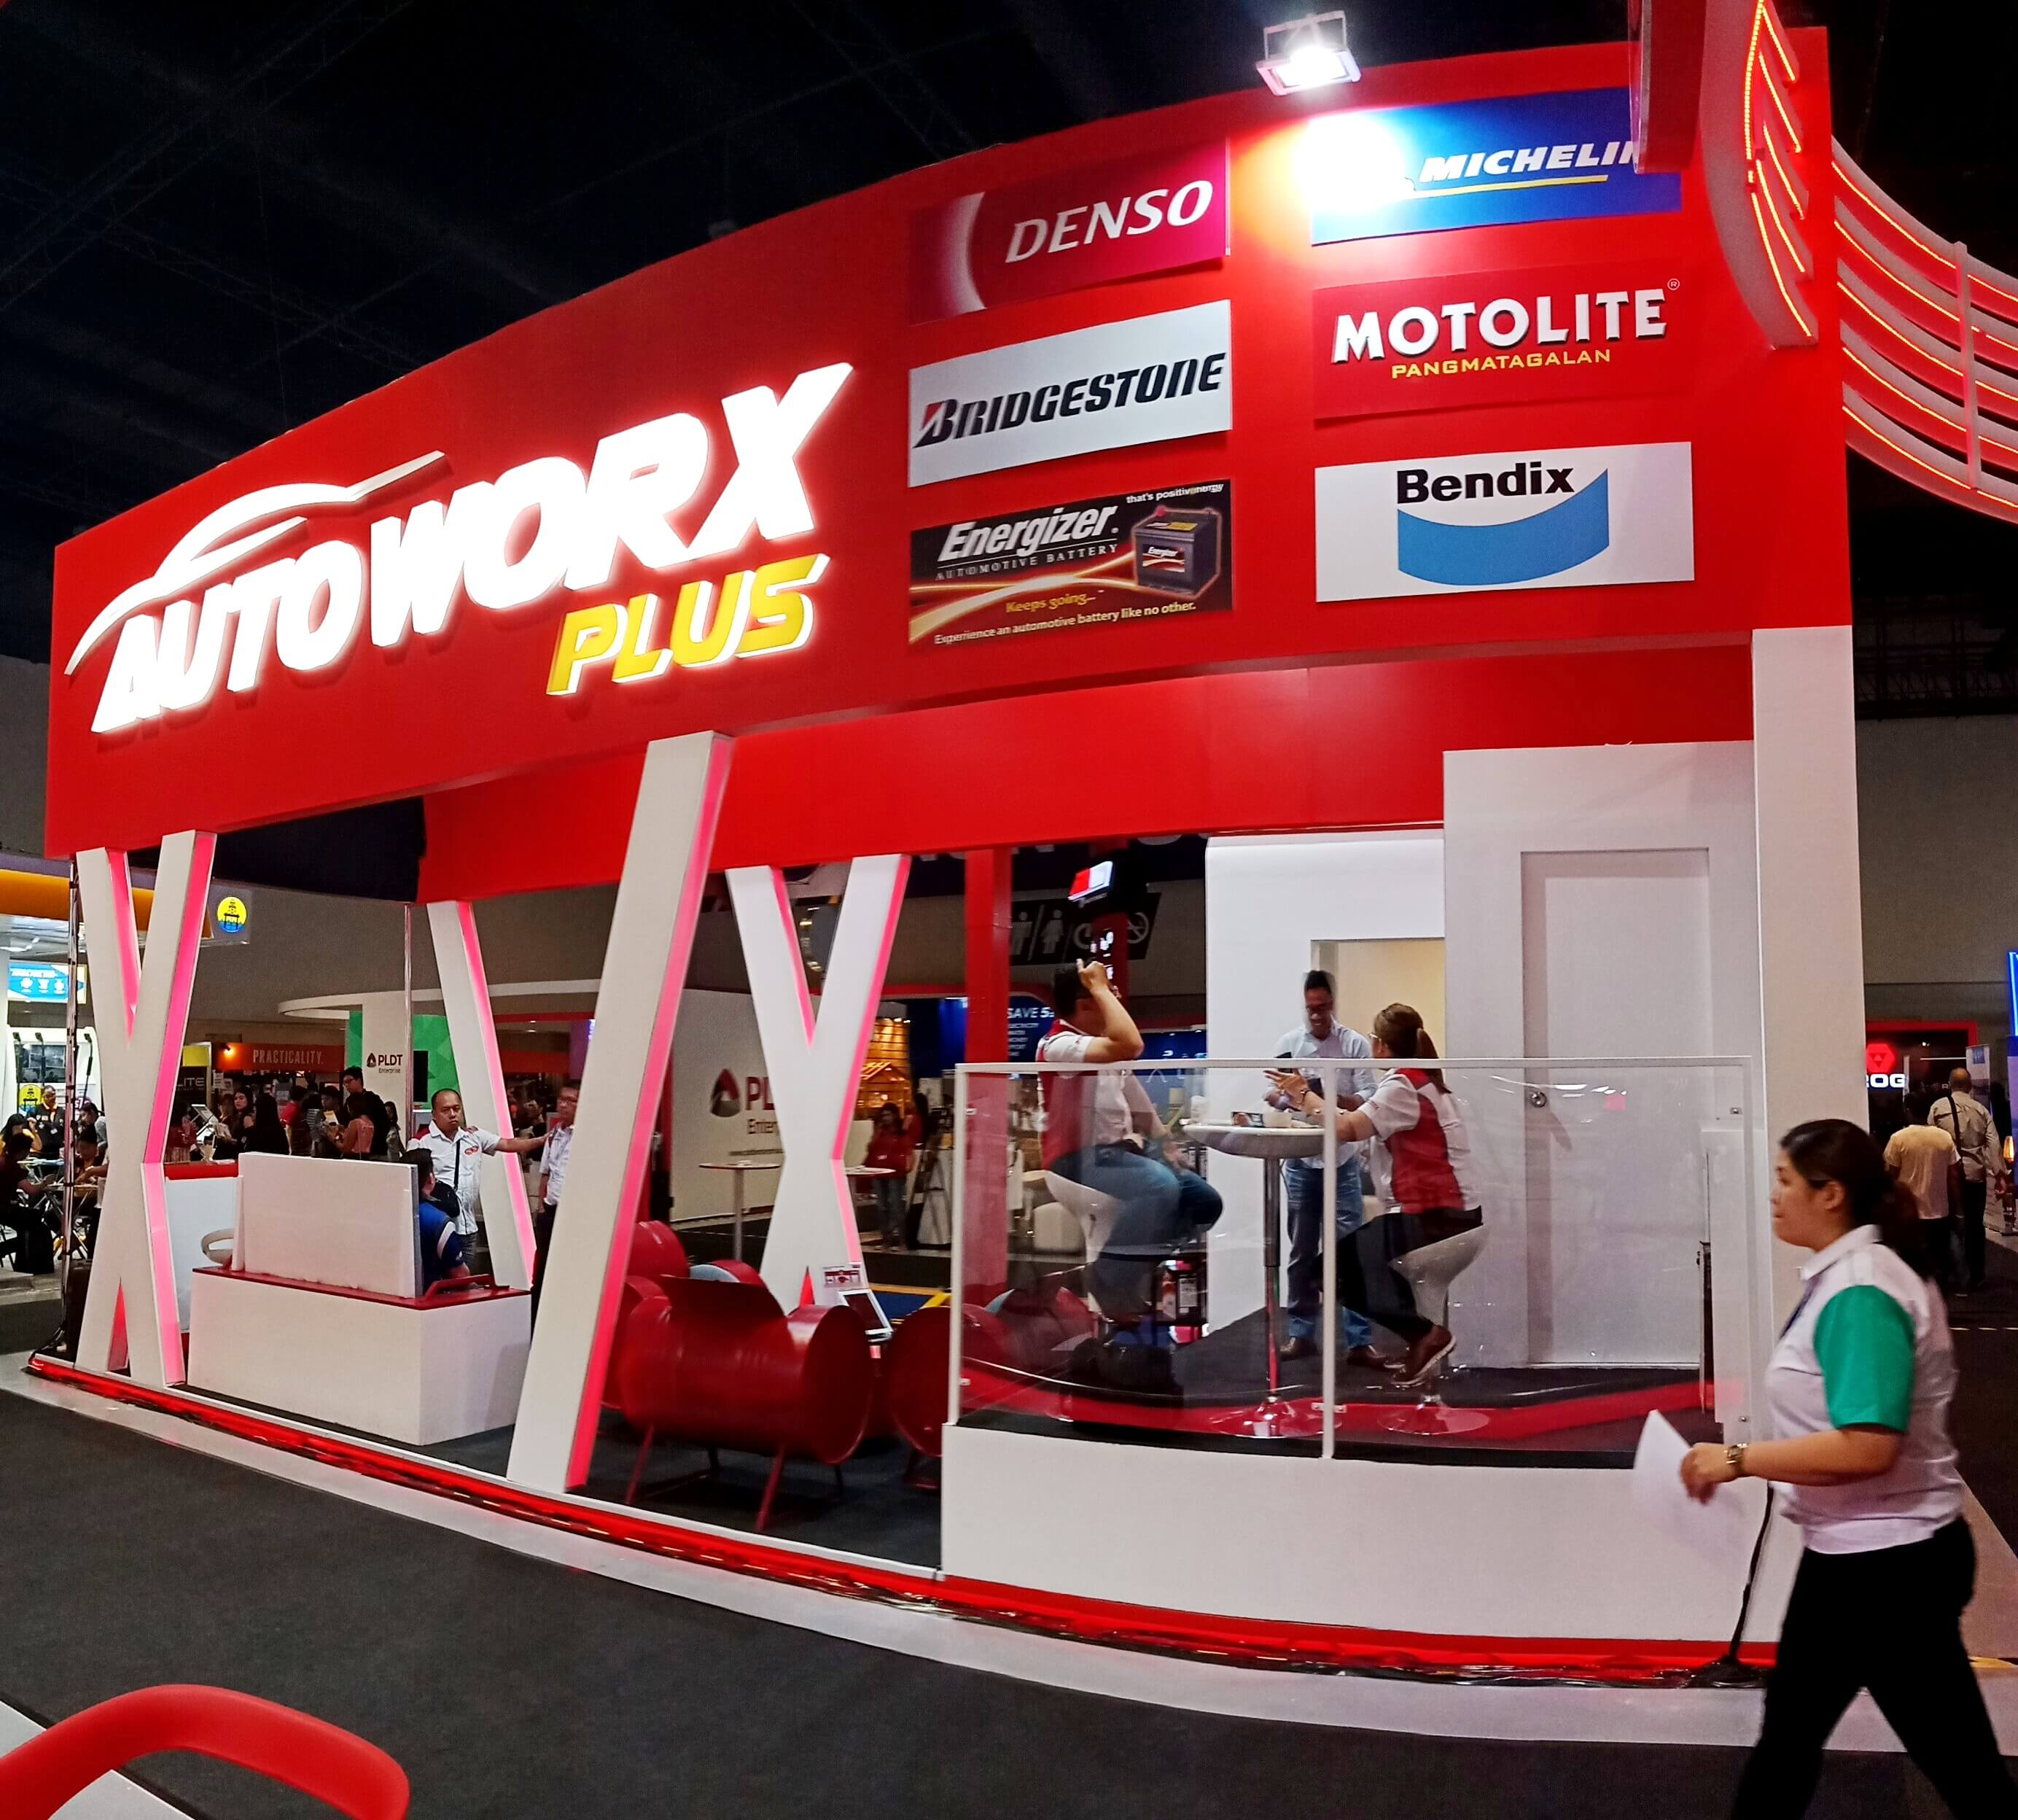 Phoenix Autoworx Plus booth at Franchise Asia Philippines 2019